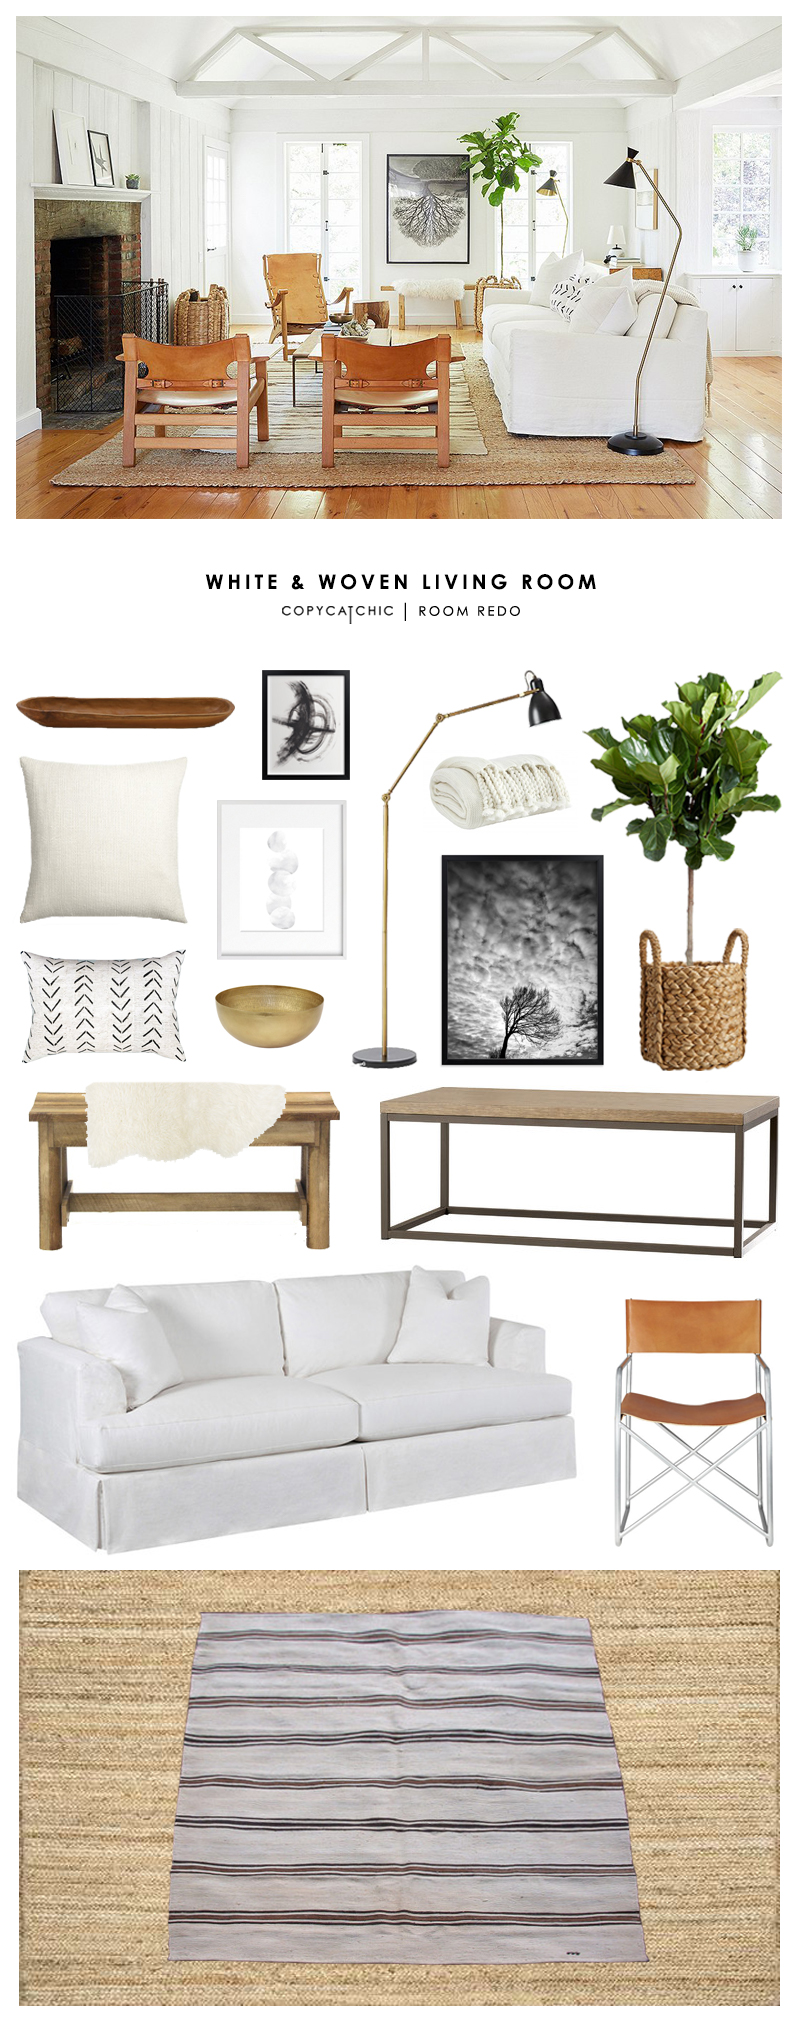 Jenni Kayne's white, woven living room recreated for less by Copy Cat Chic luxe living for less budget home decor and design room redos looks for less